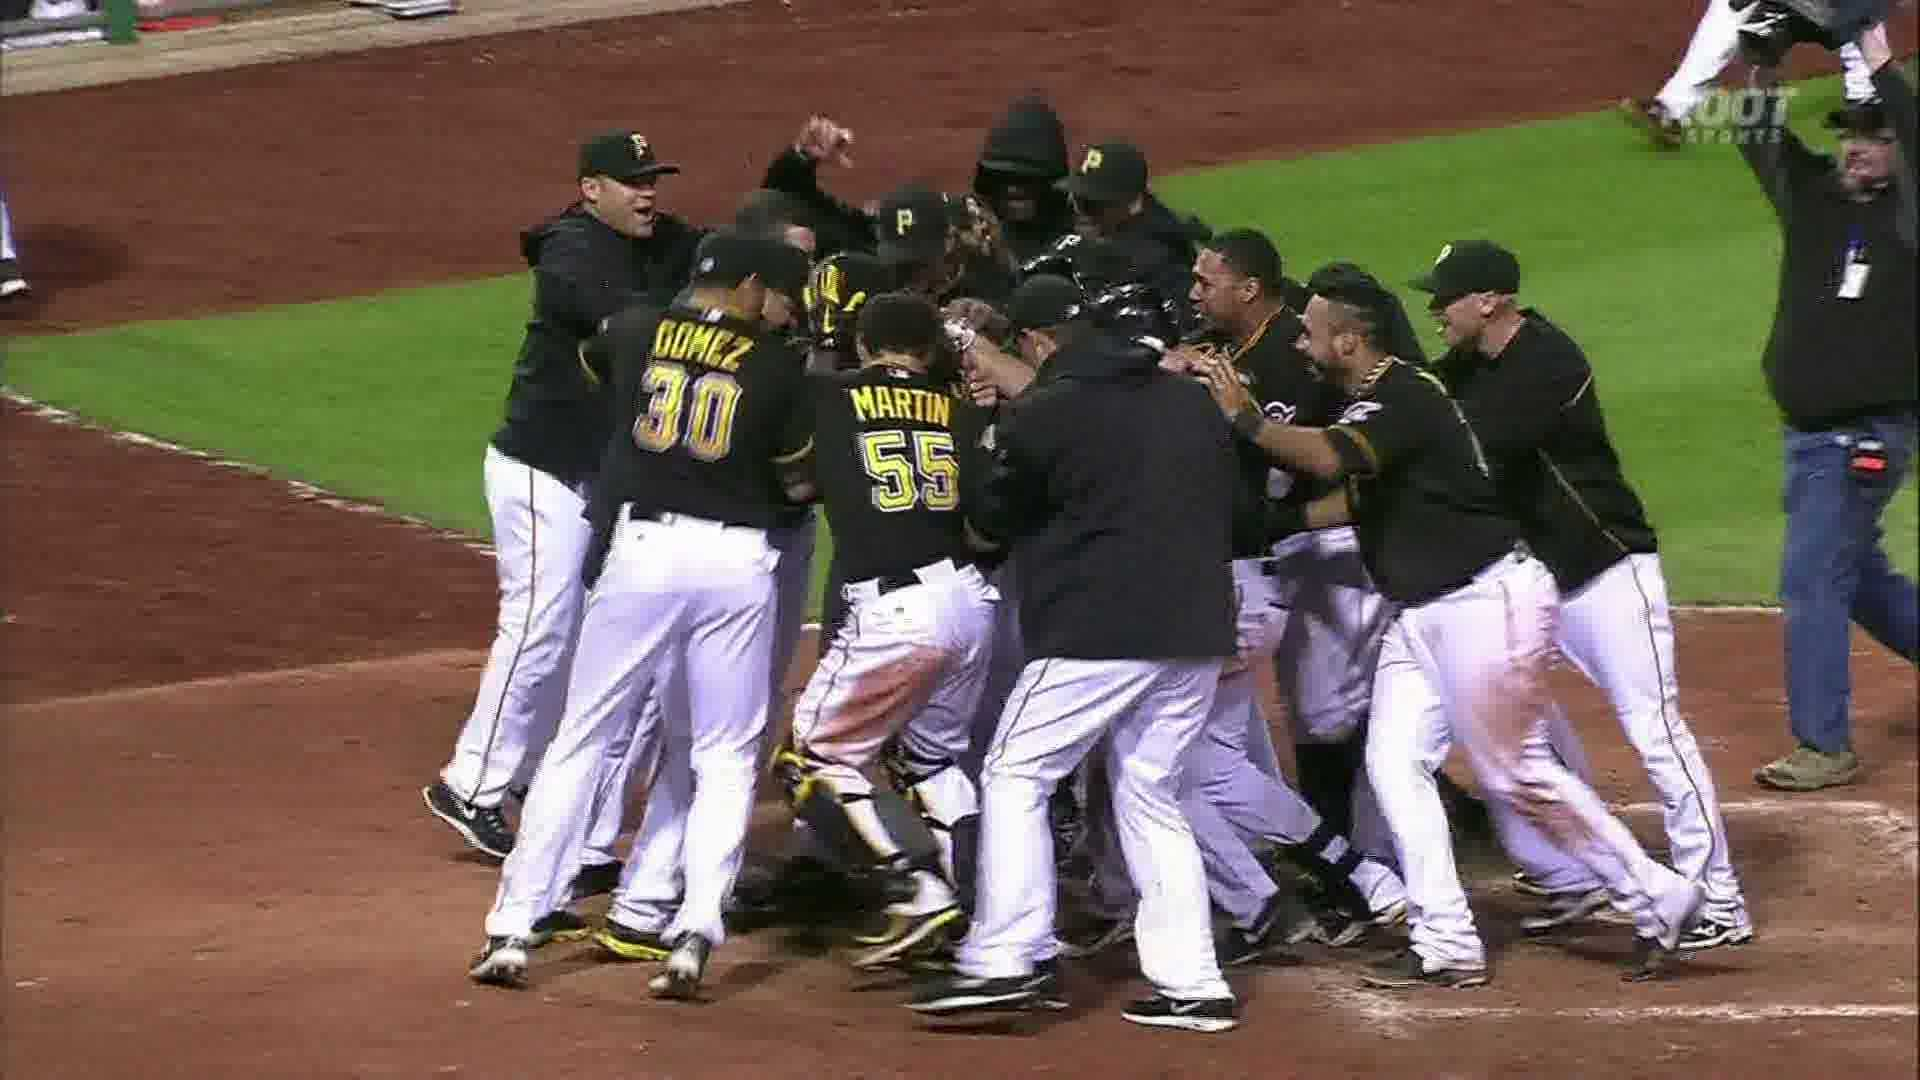 Pirates celebrate McCutchen's homer